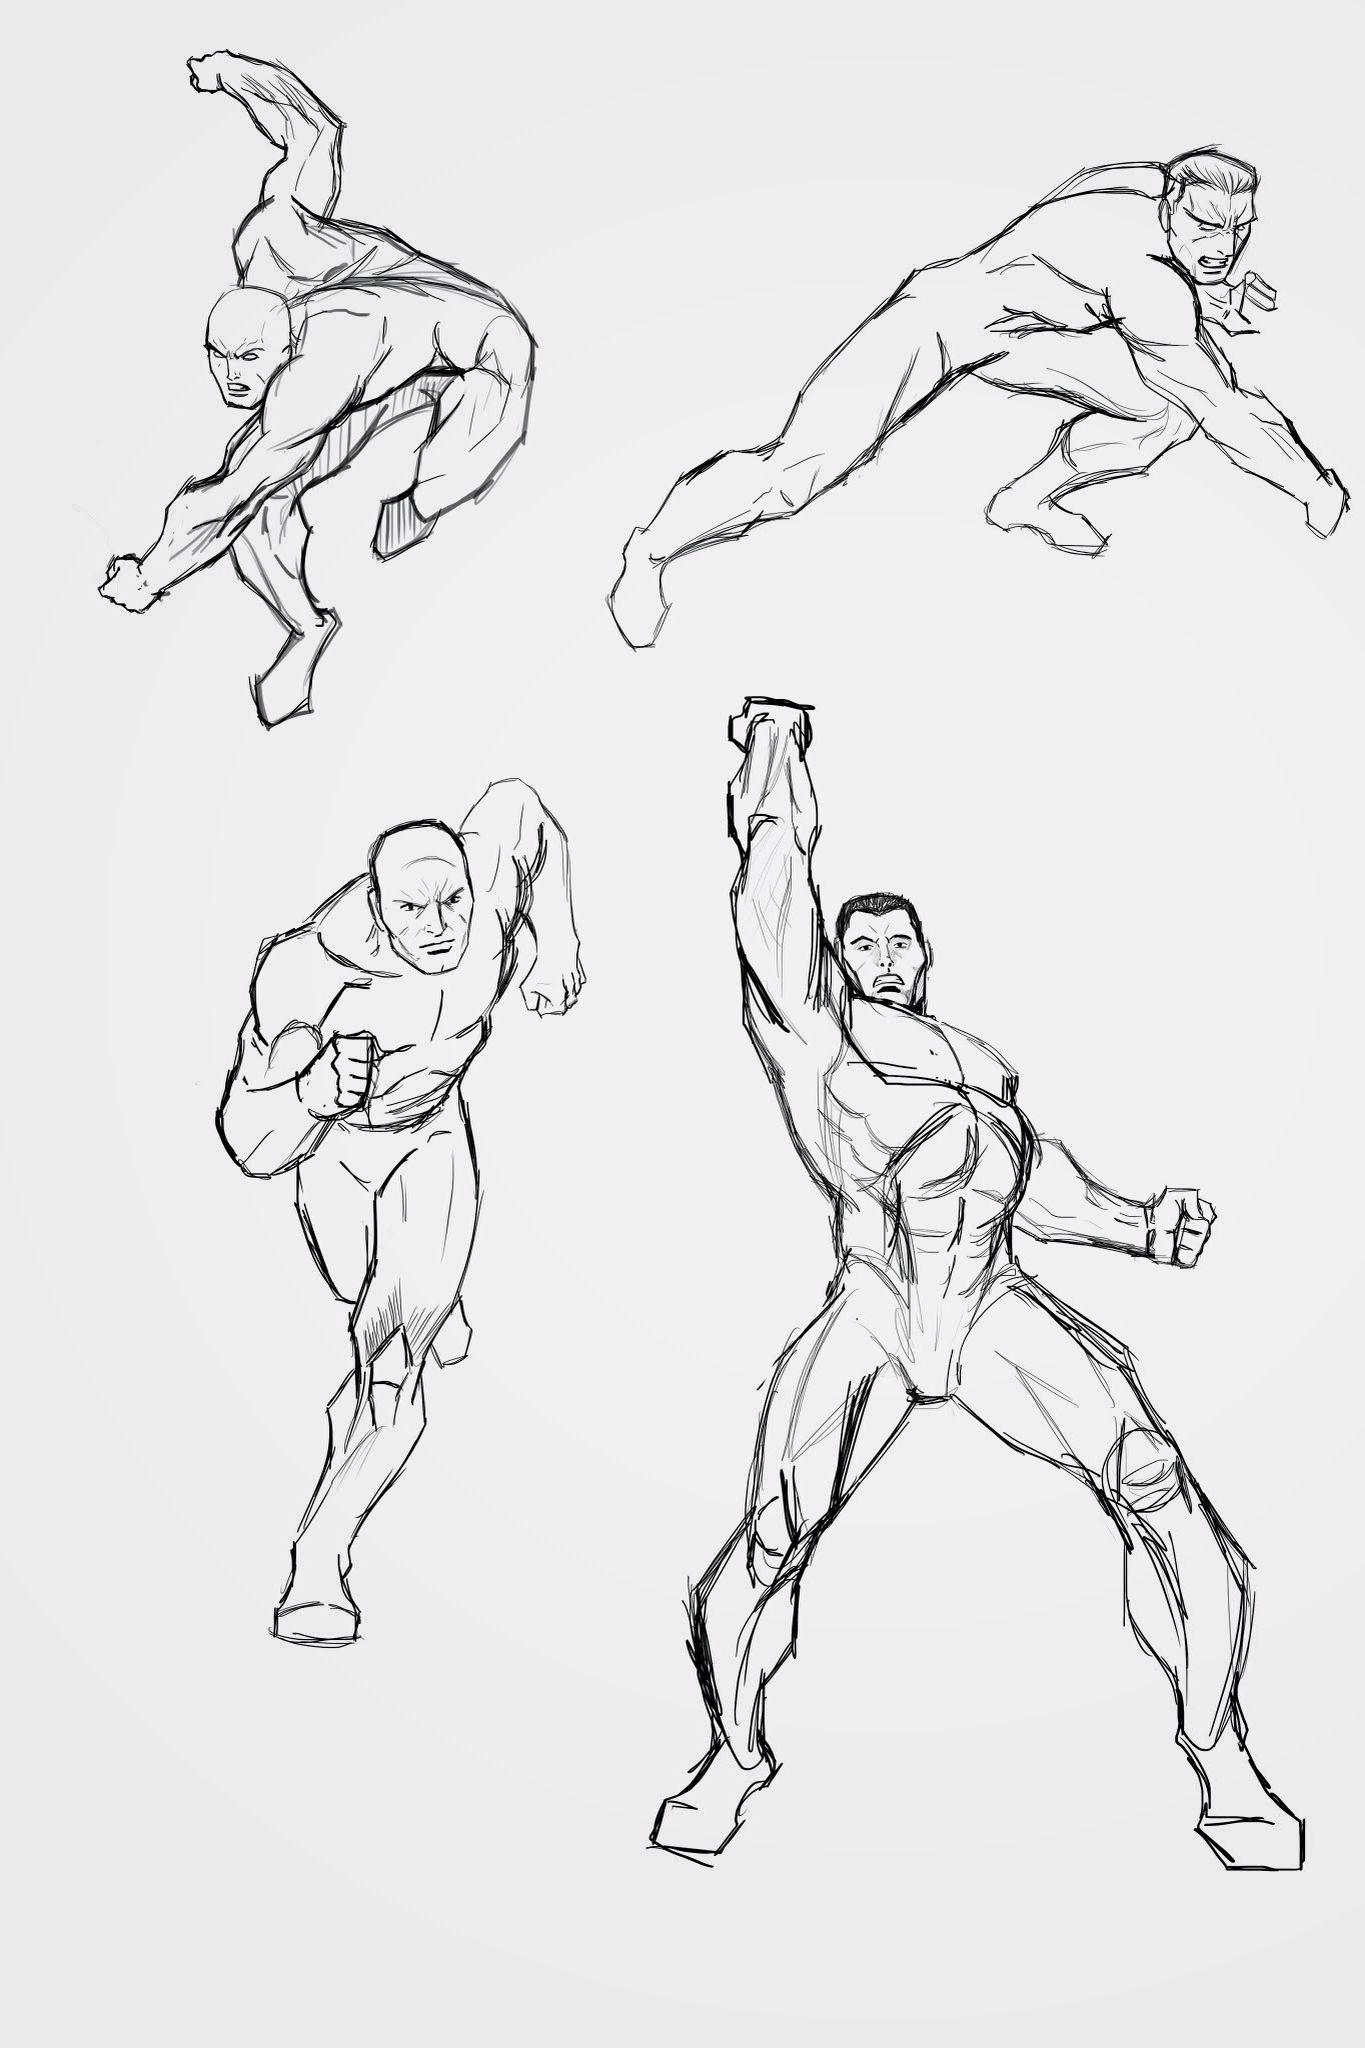 Drew Some Action Poses In Photoshop Male Body Art Action Poses Art Poses